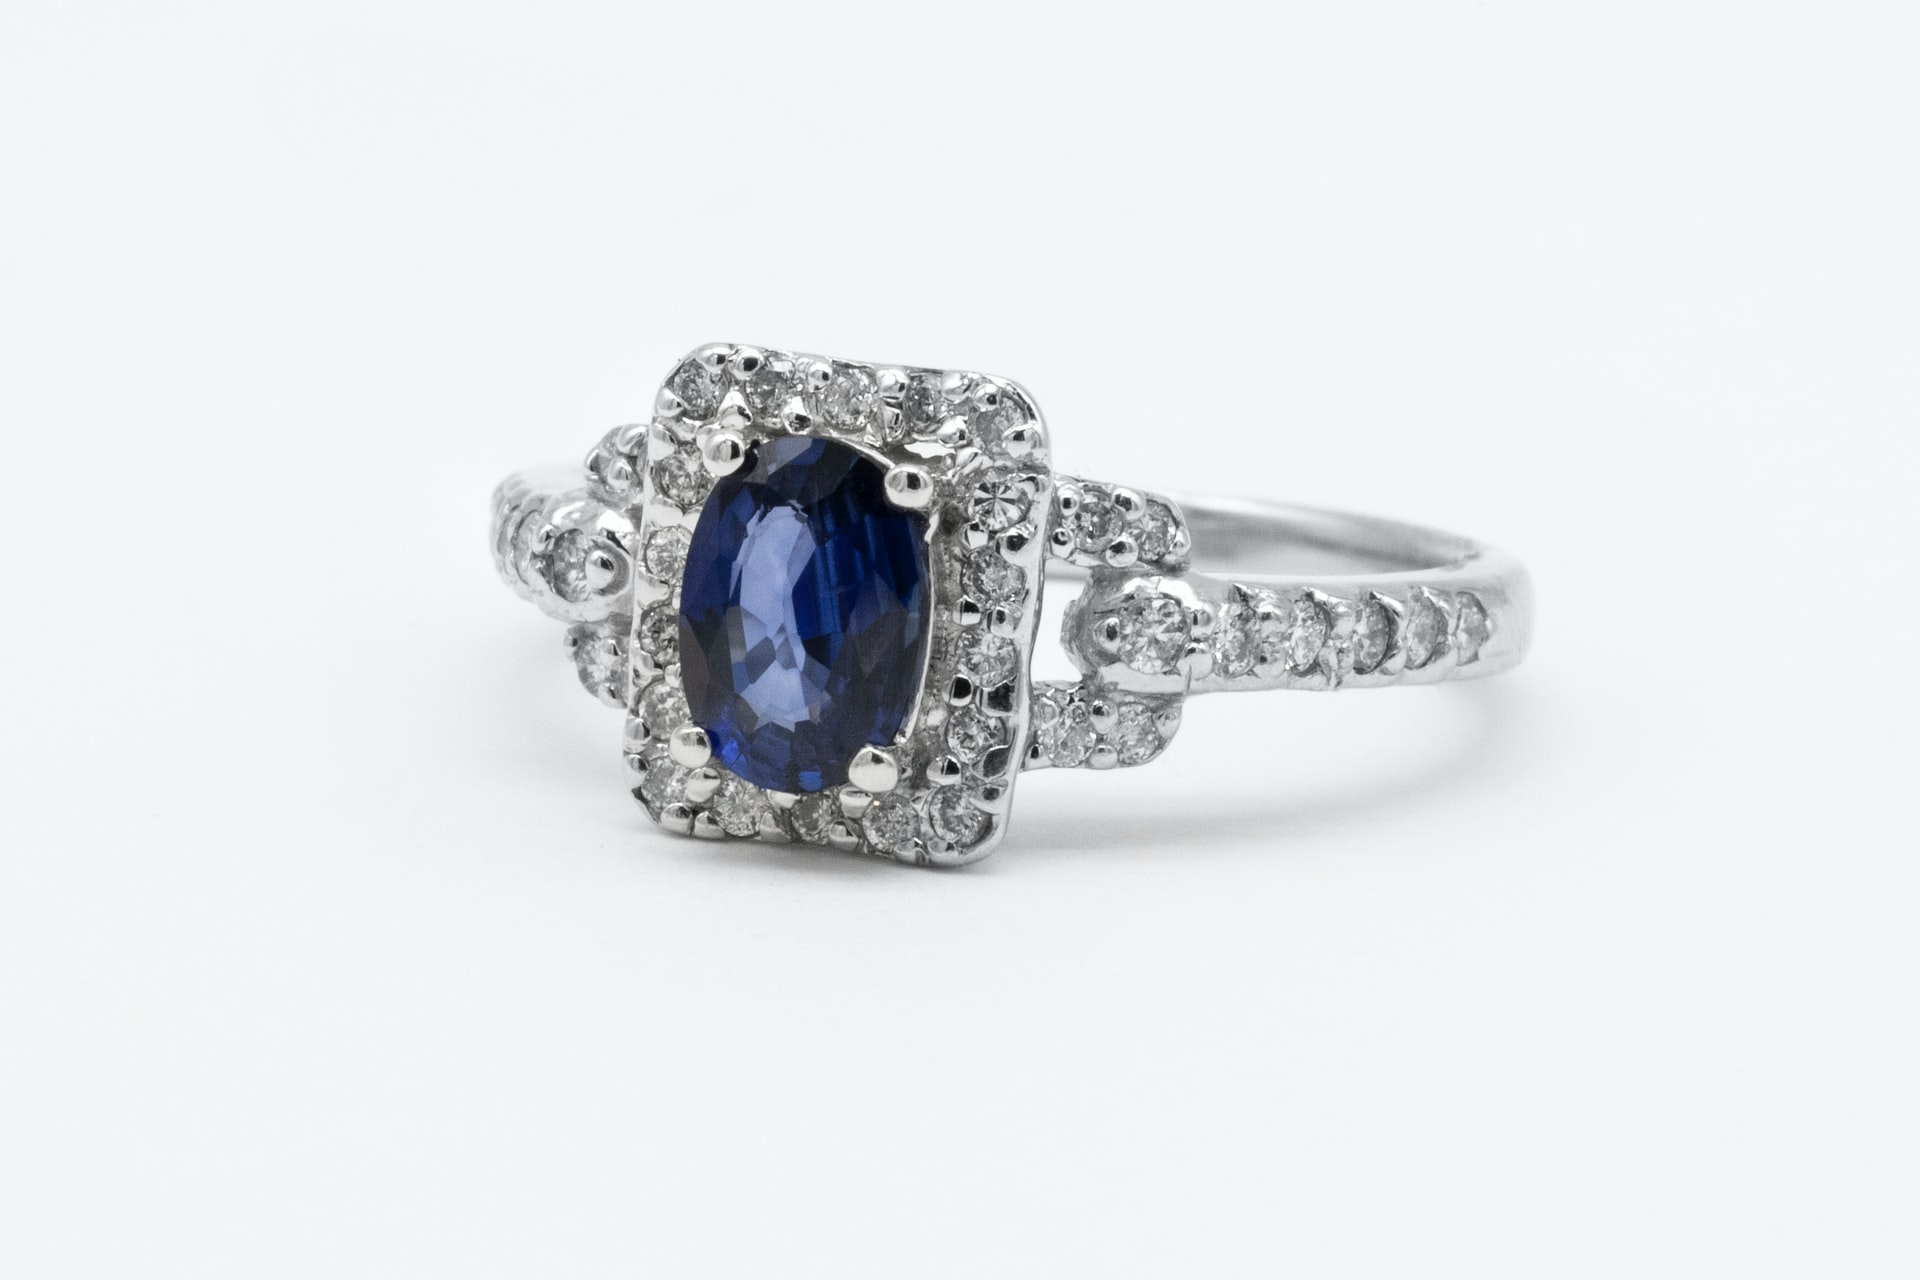 An engagement ring with a blue stone